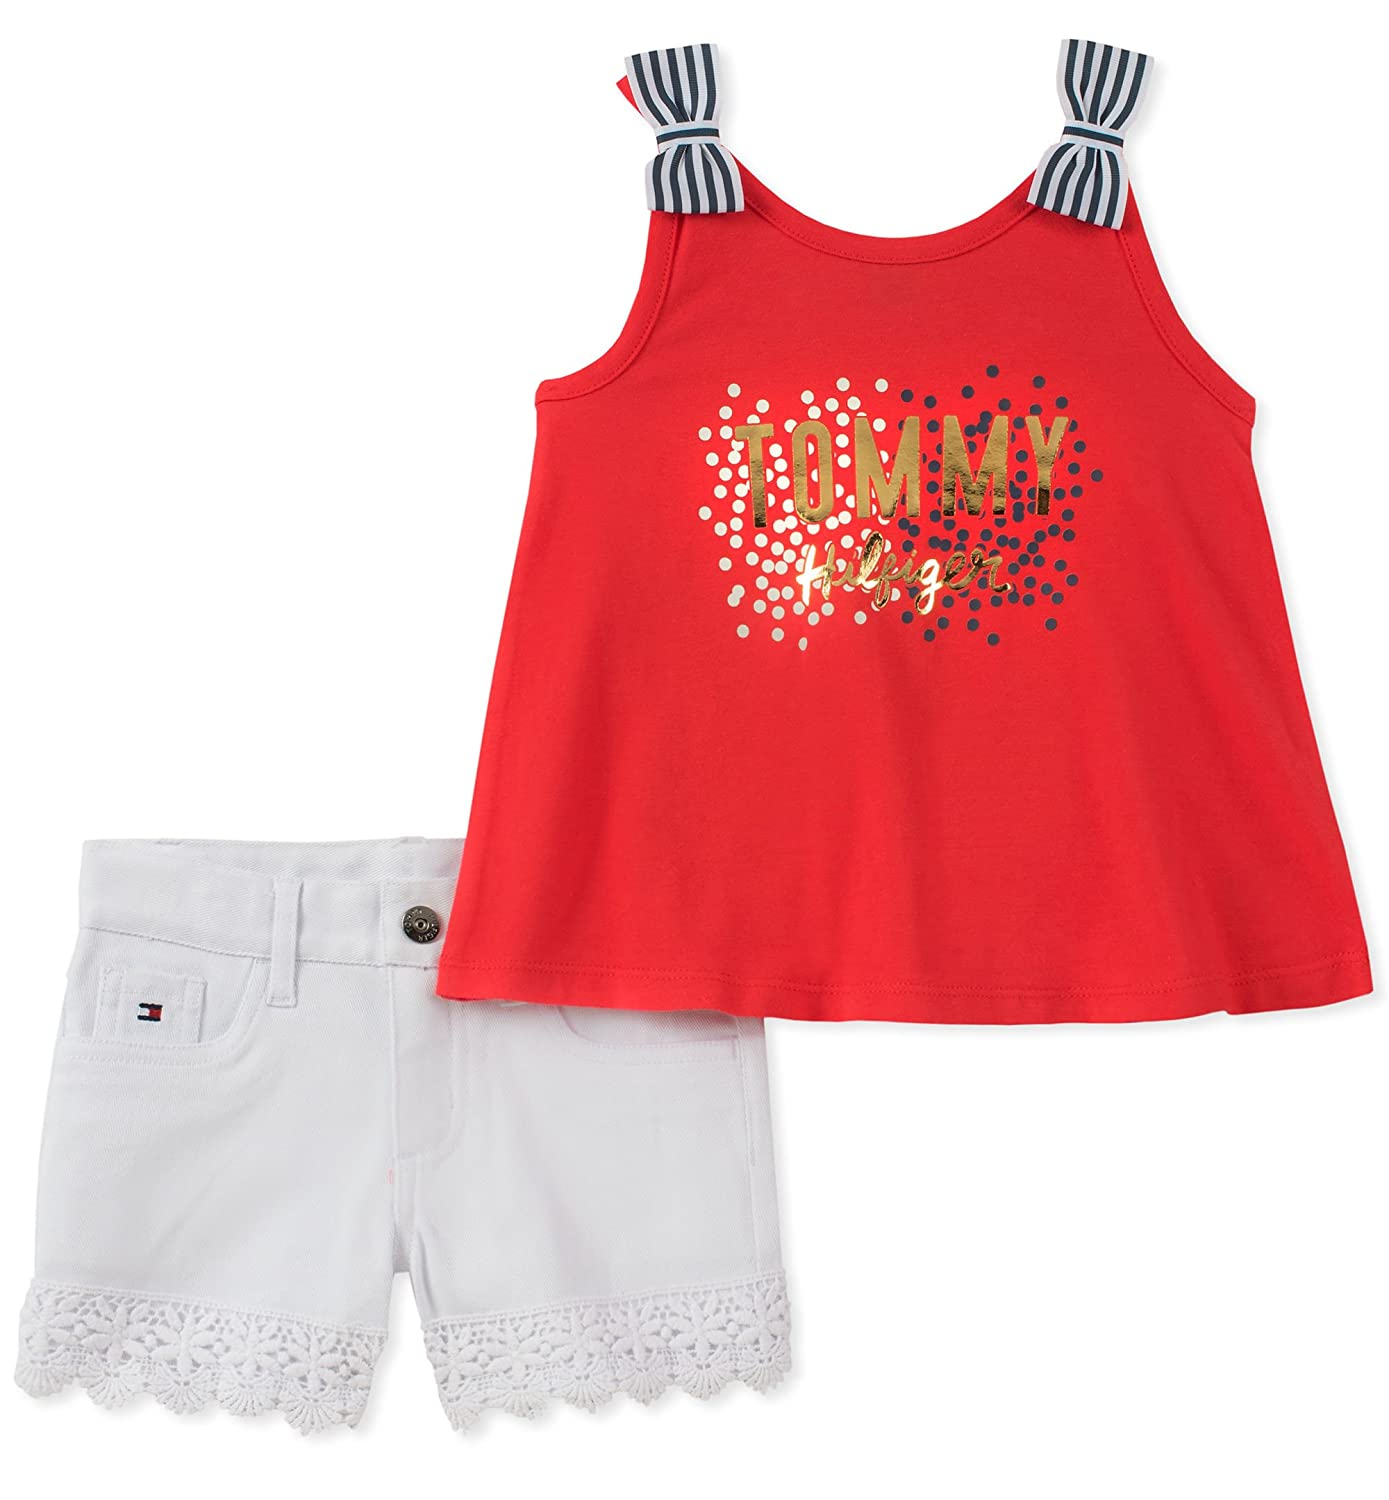 Tommy Hilfiger Girls' Shorts Set,